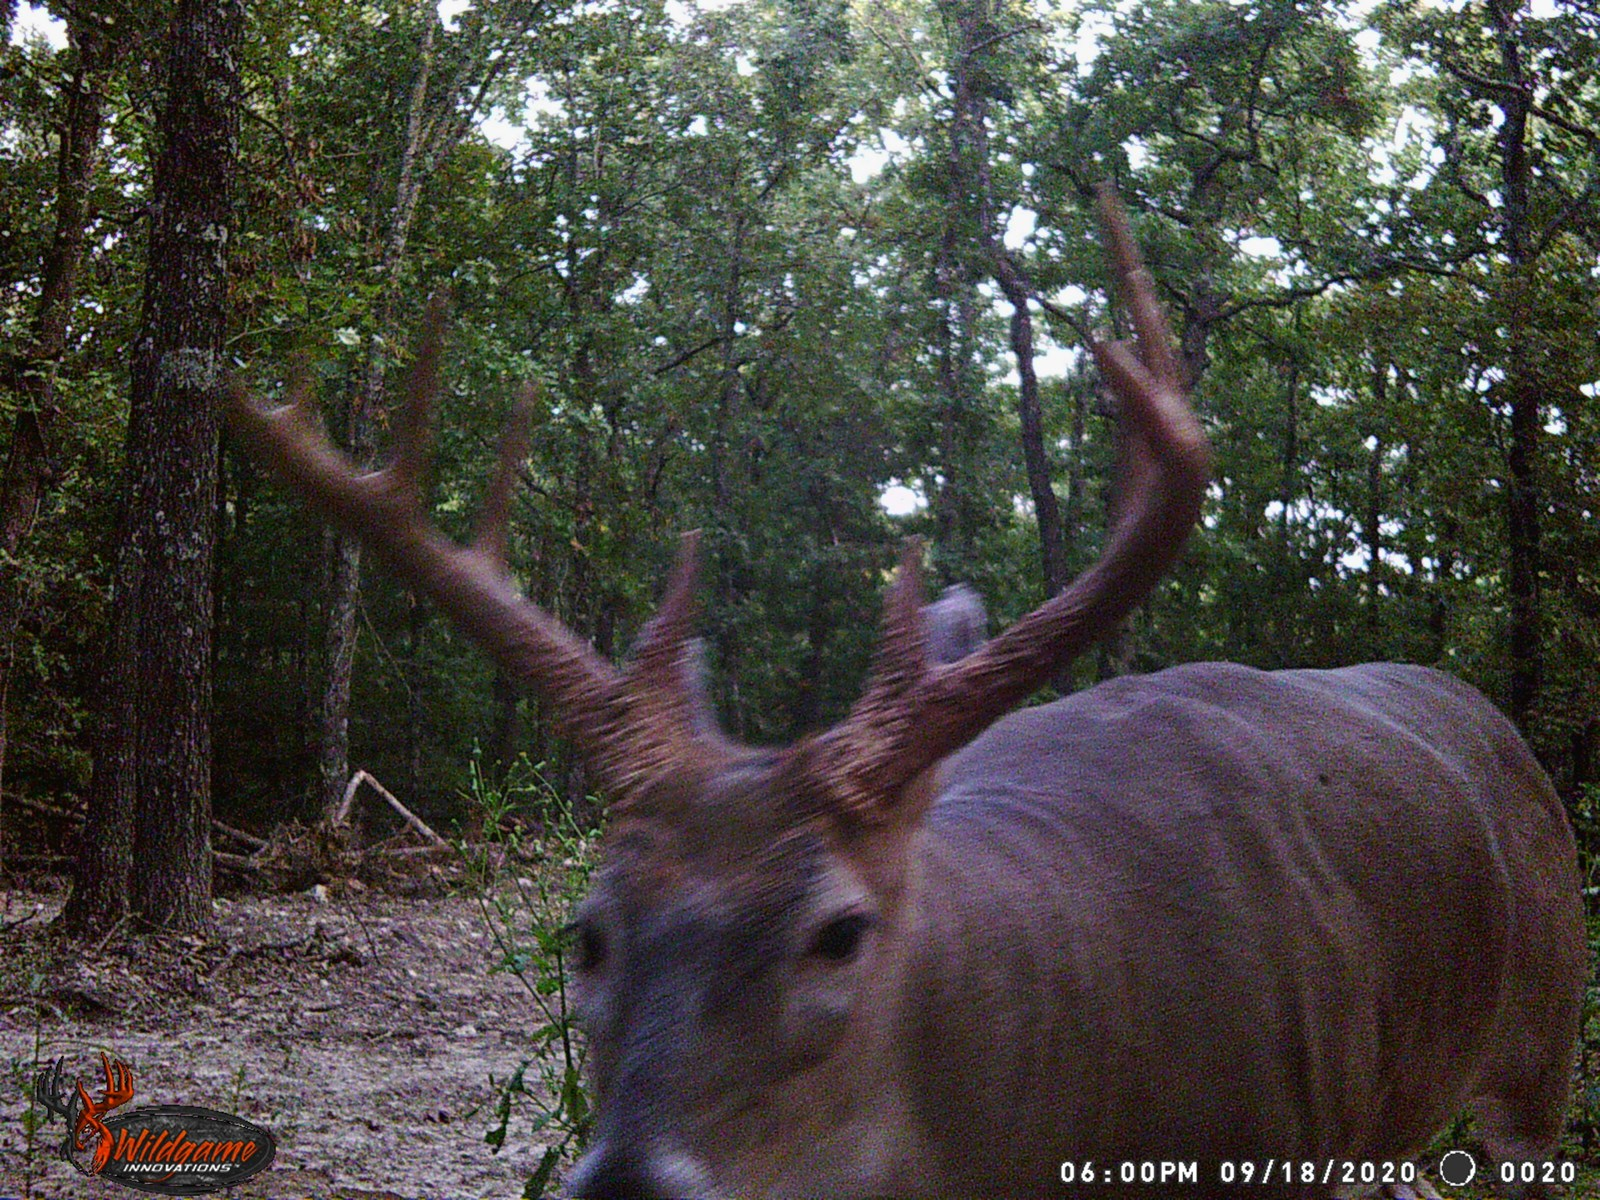 Hunting Land In Missouri! 120 Acres Loaded With Deer!